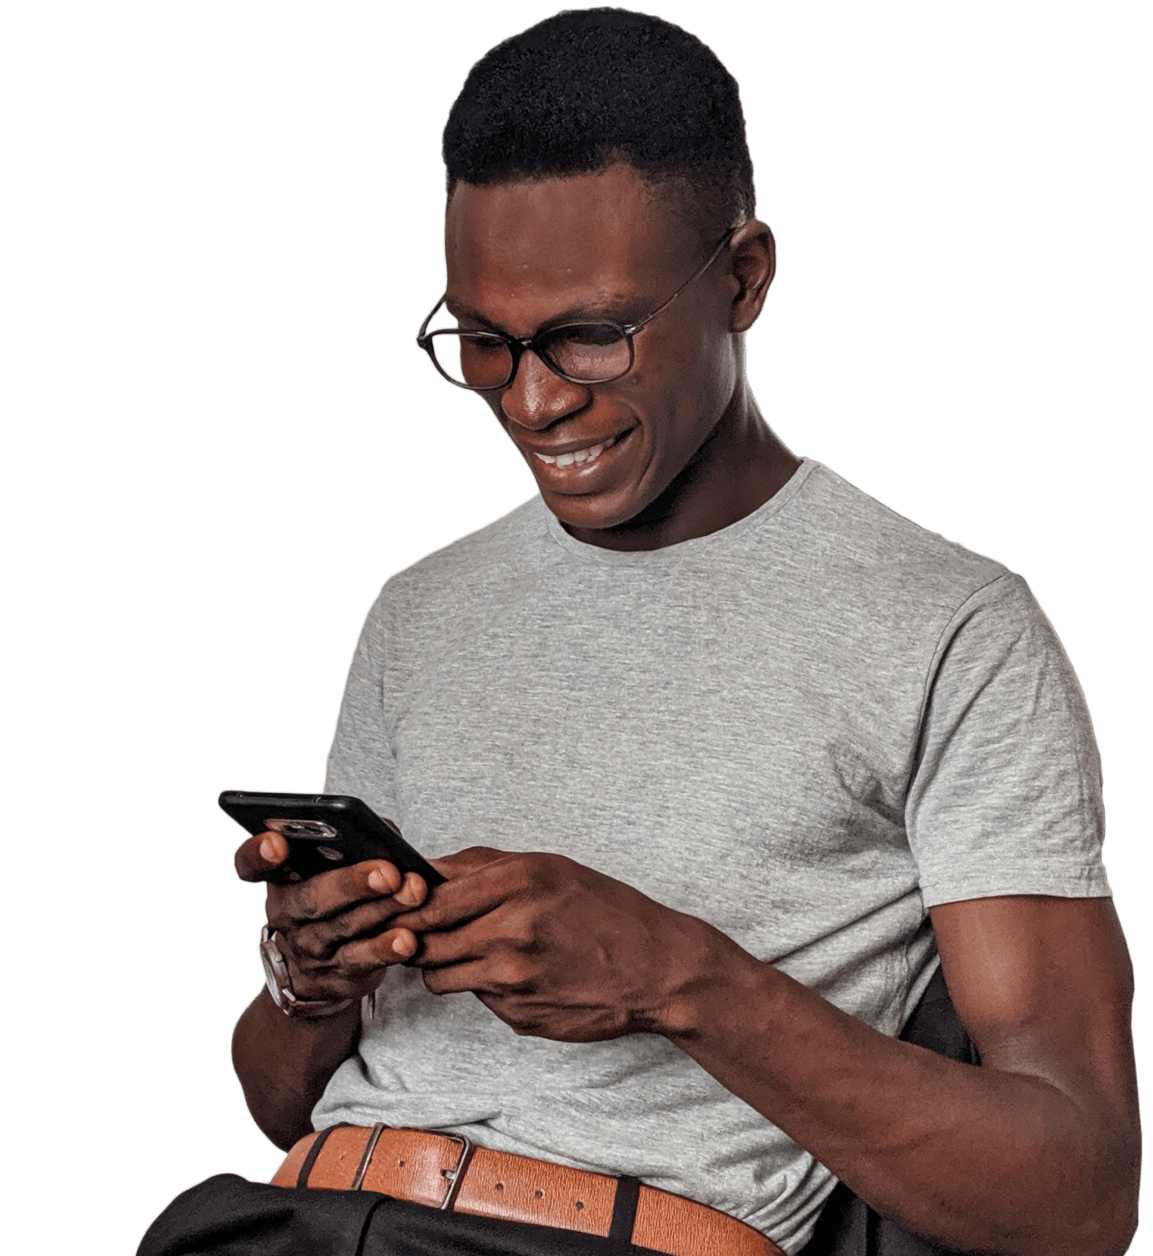 Man looking at his phone happy that he's getting support responses.